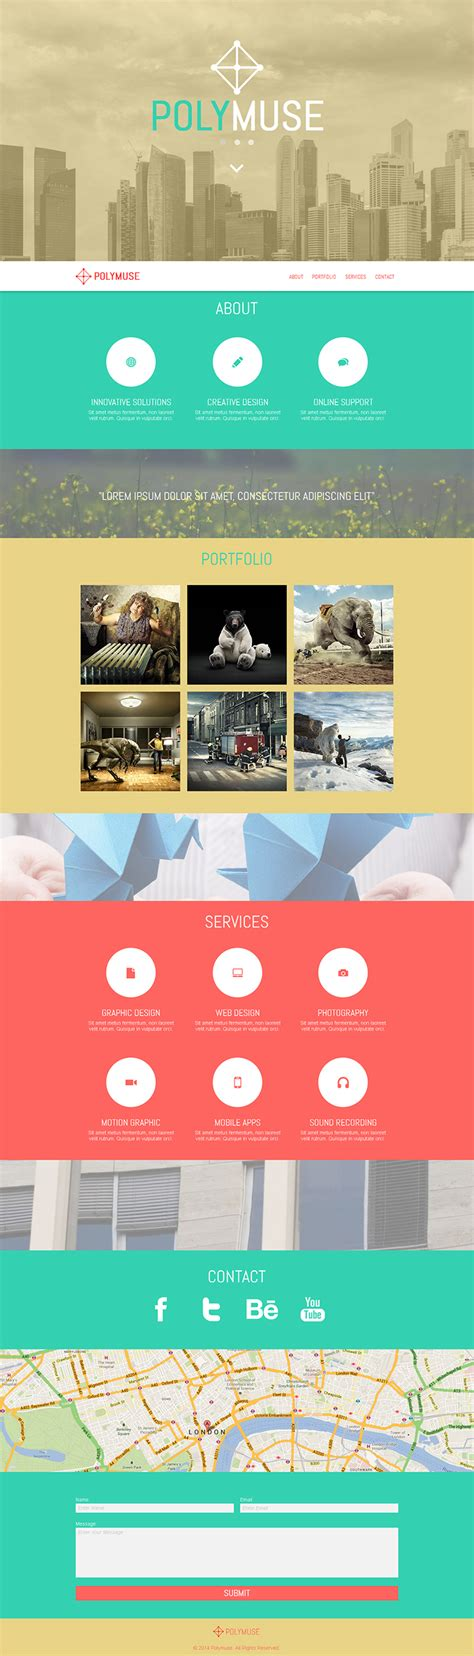 polymuse one page parallax muse template by pixelladyart